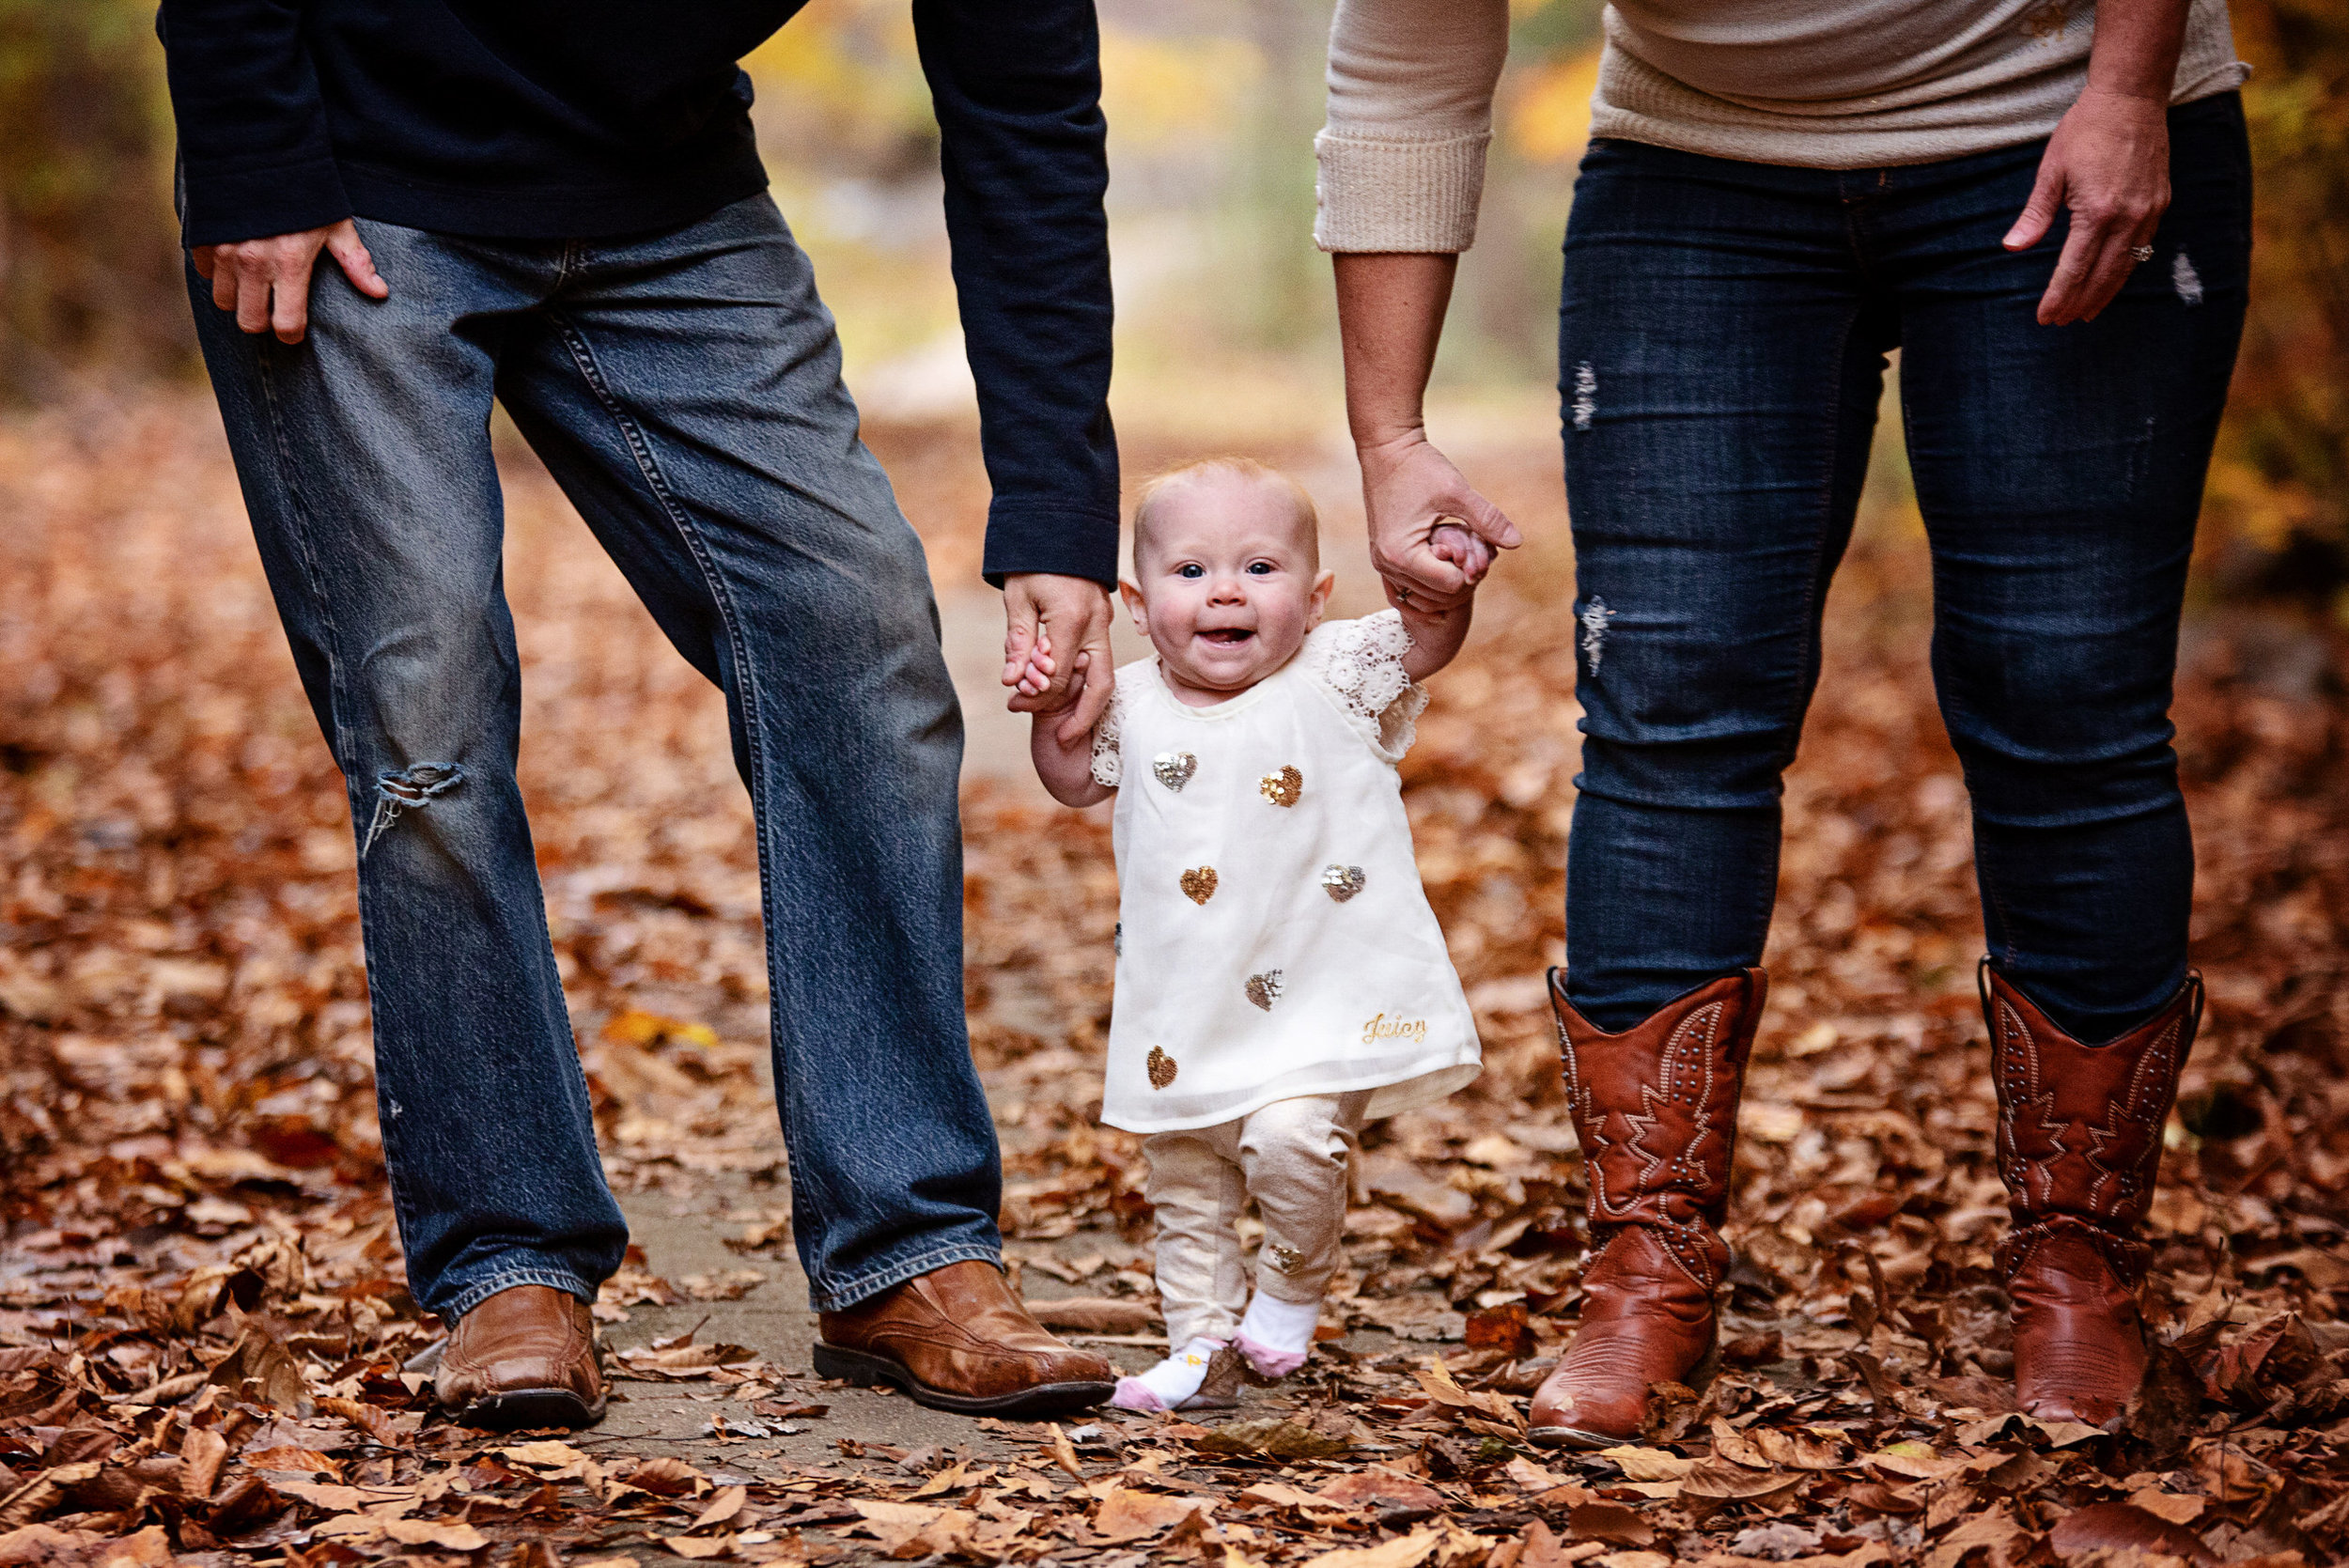 MarylandFamilyPhotography-SkylarFamily2018-25.jpg